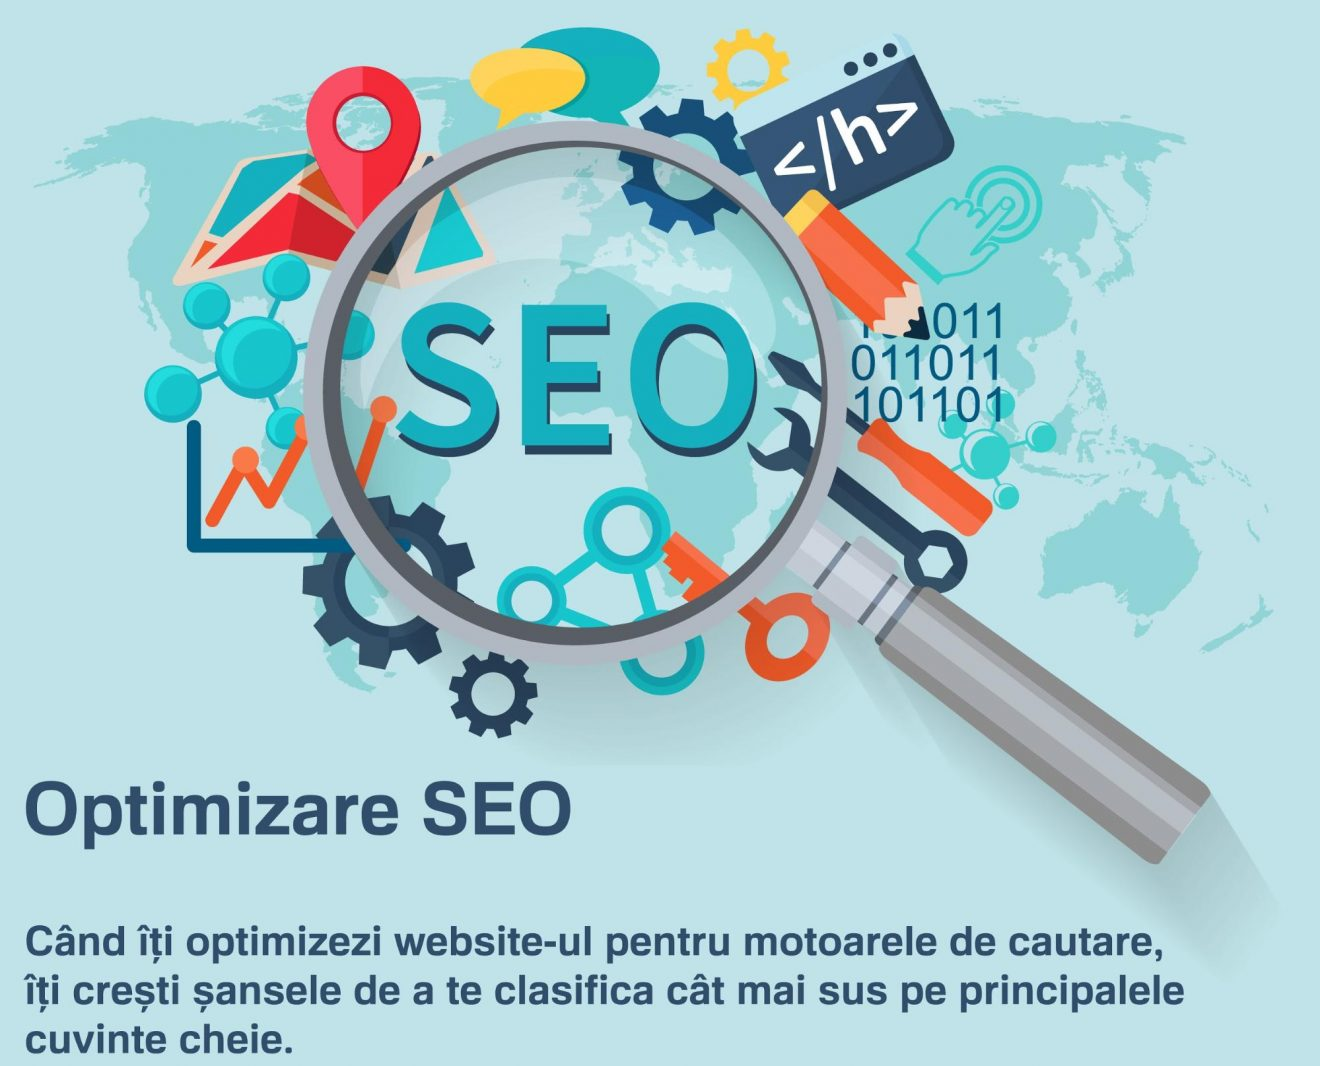 Optimizarea eficienta a unui website